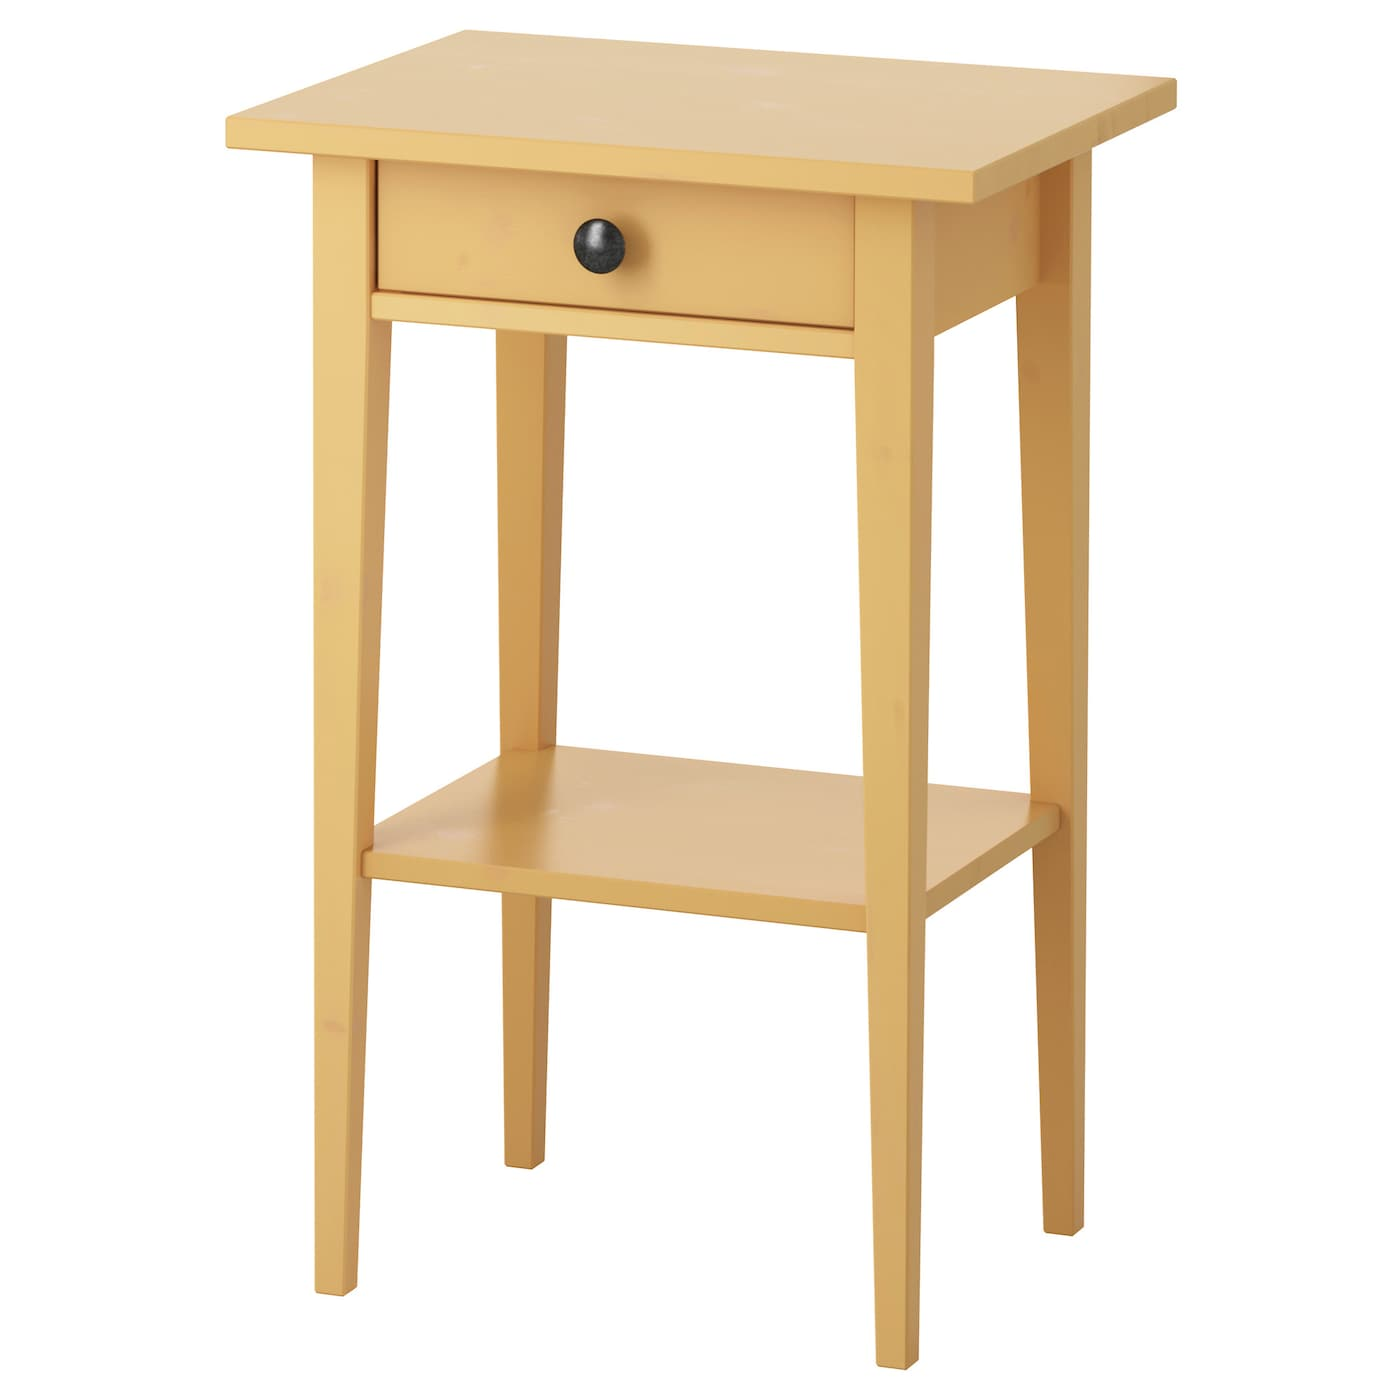 Hemnes bedside table yellow 46x35 cm ikea - Table de chevet jaune ...